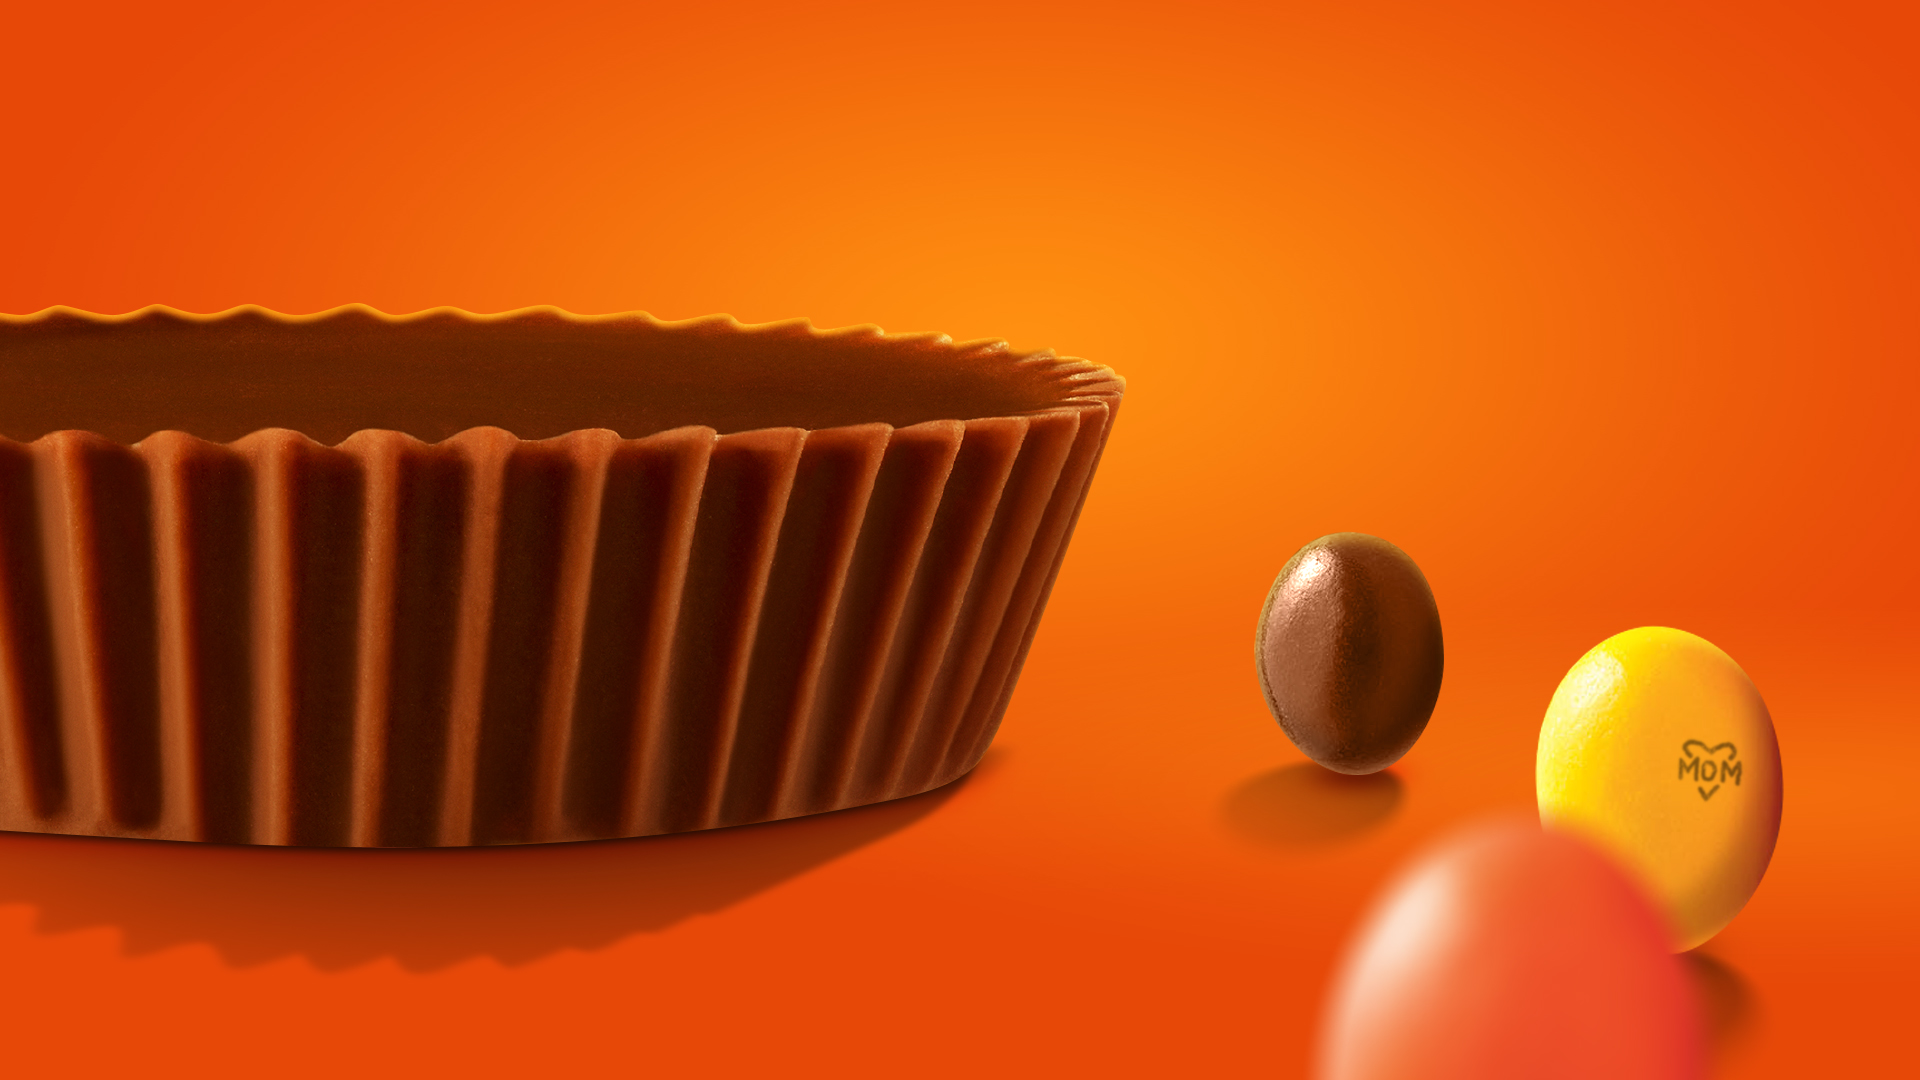 Reeses_ClubReeses_A_02.jpg